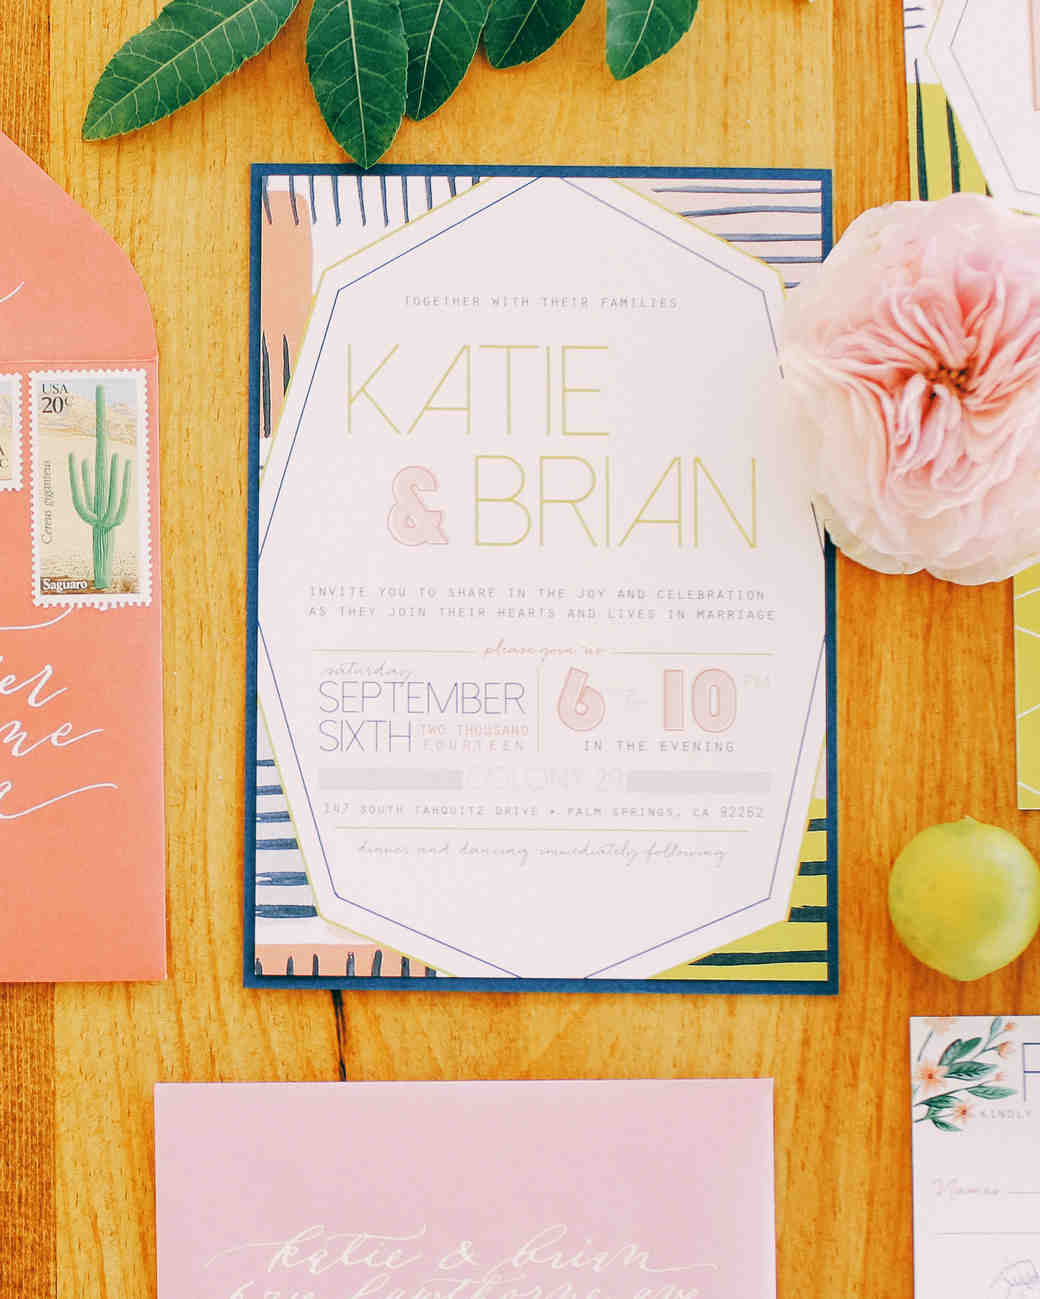 katie-brian-wedding-stationery-2971-s111885-0515.jpg